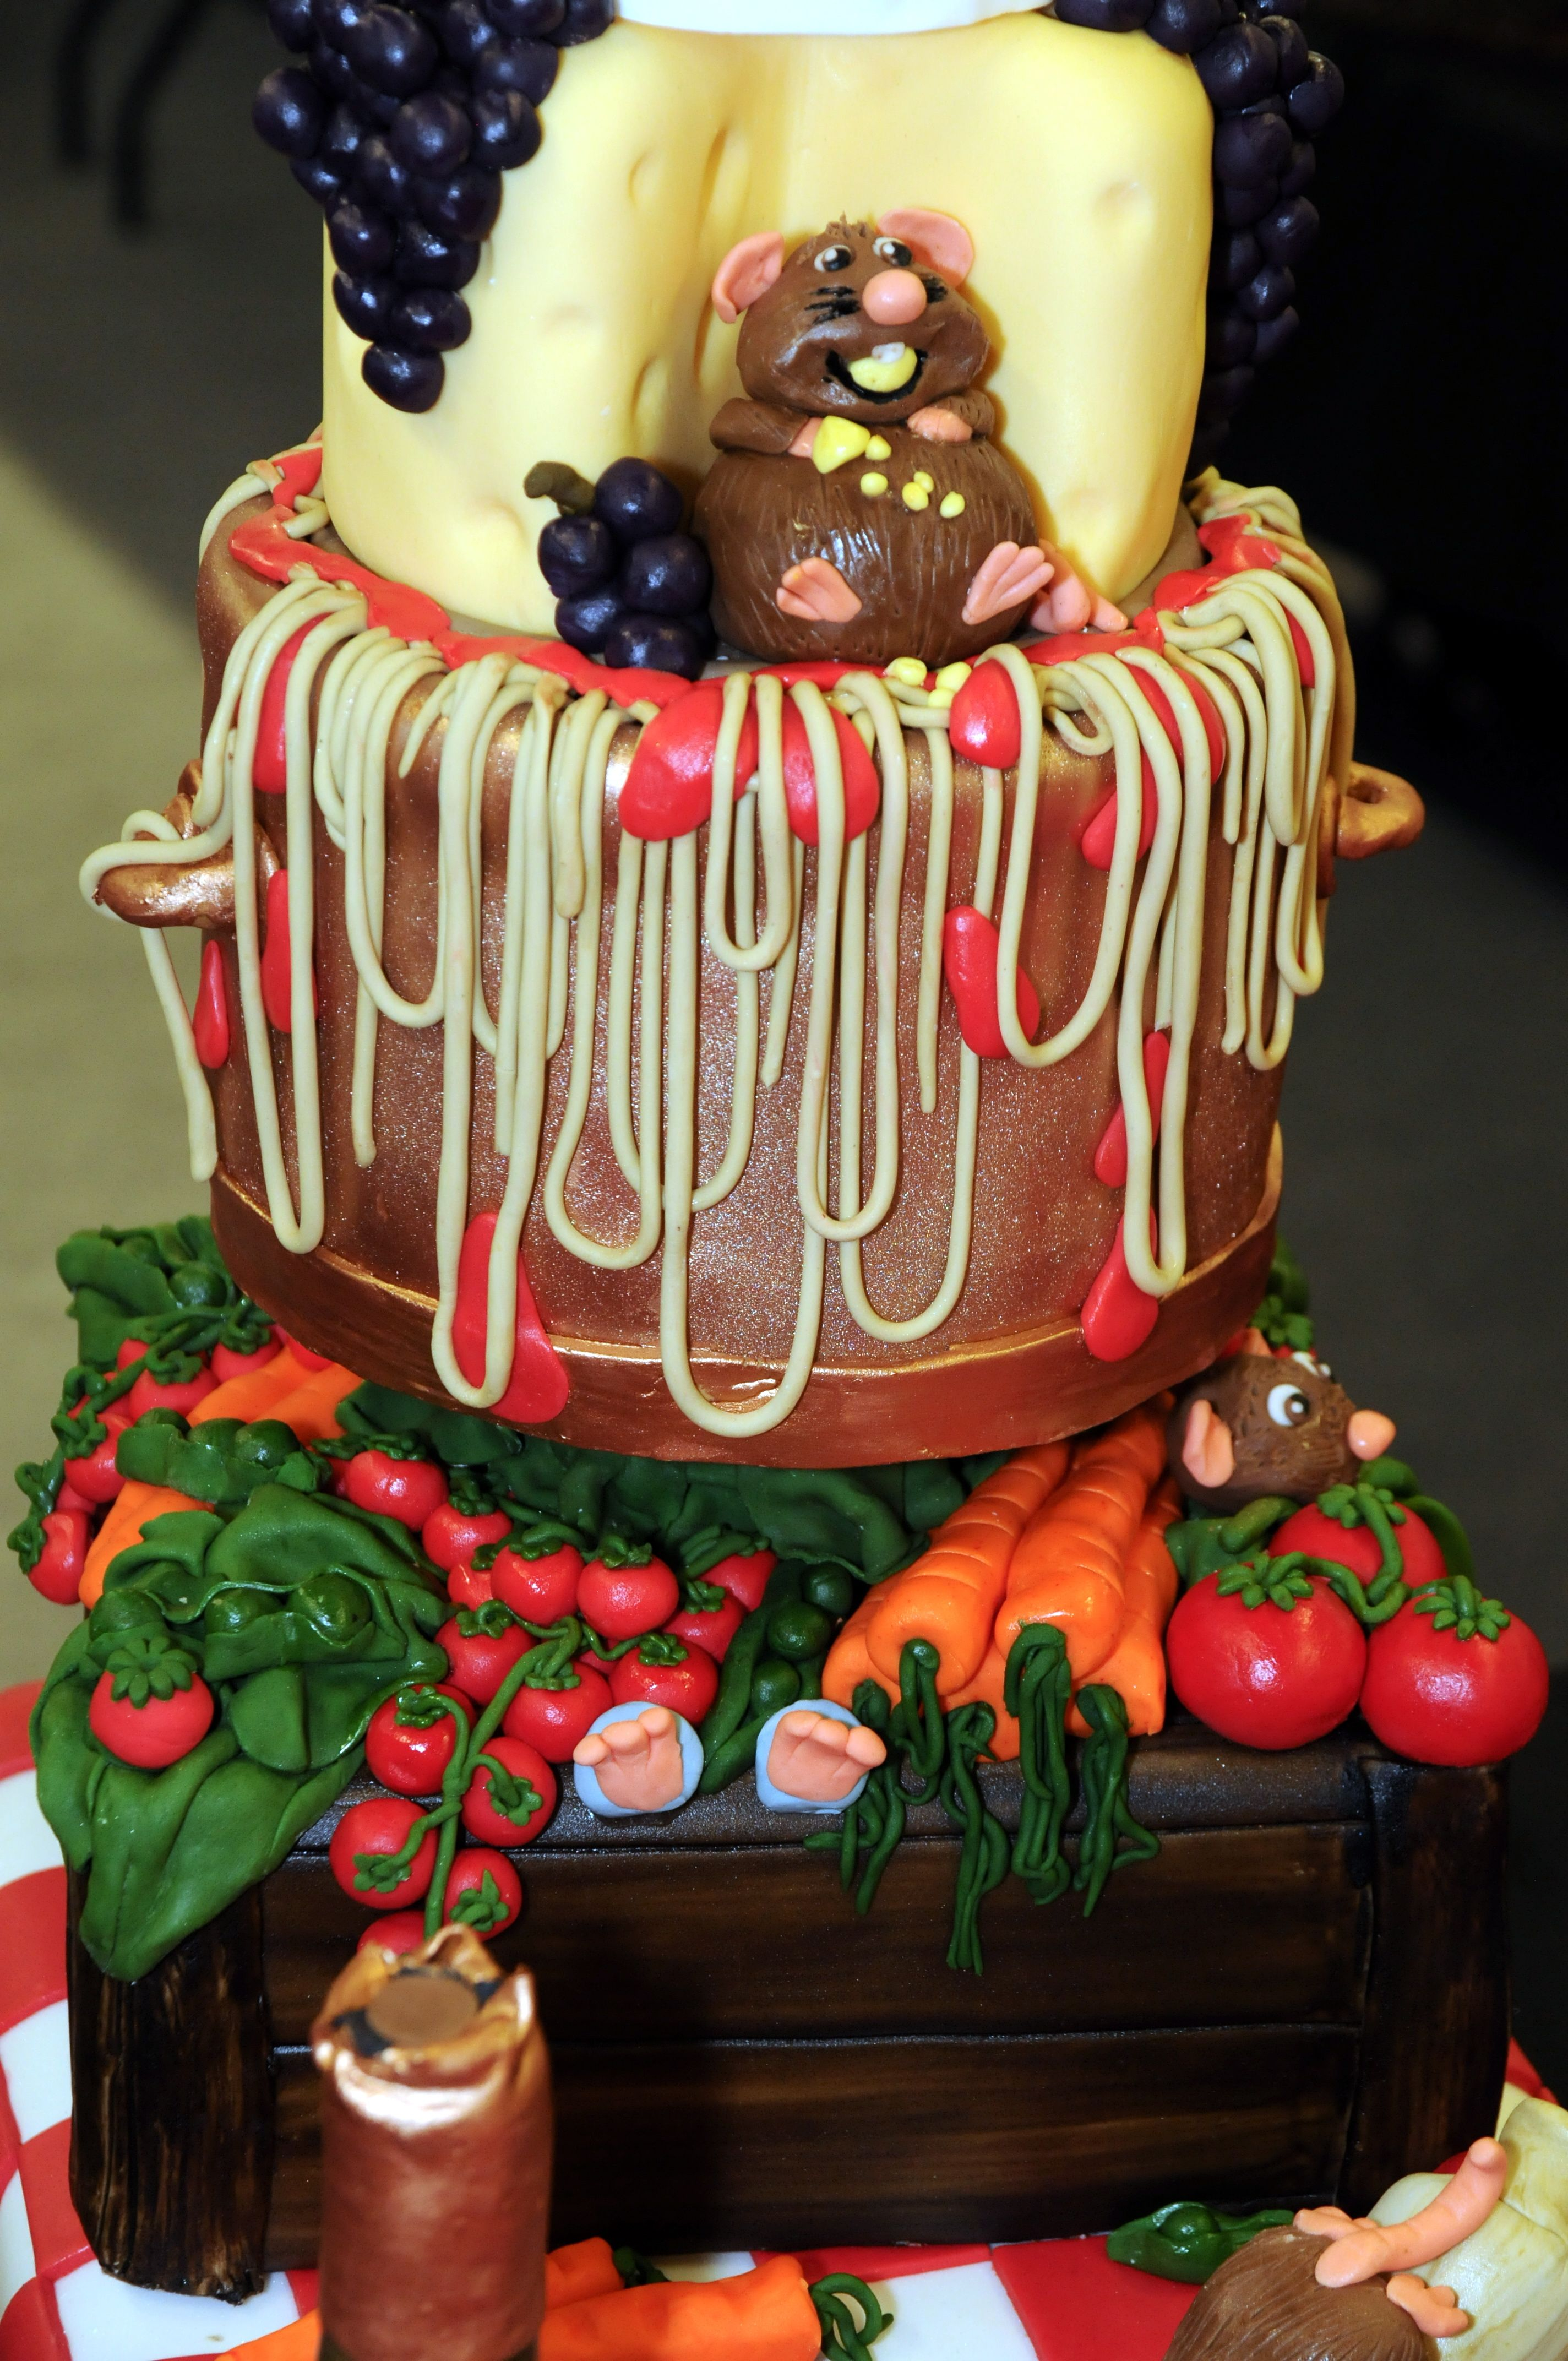 Ratatouille By Ruth Taylor Harrogate Competition